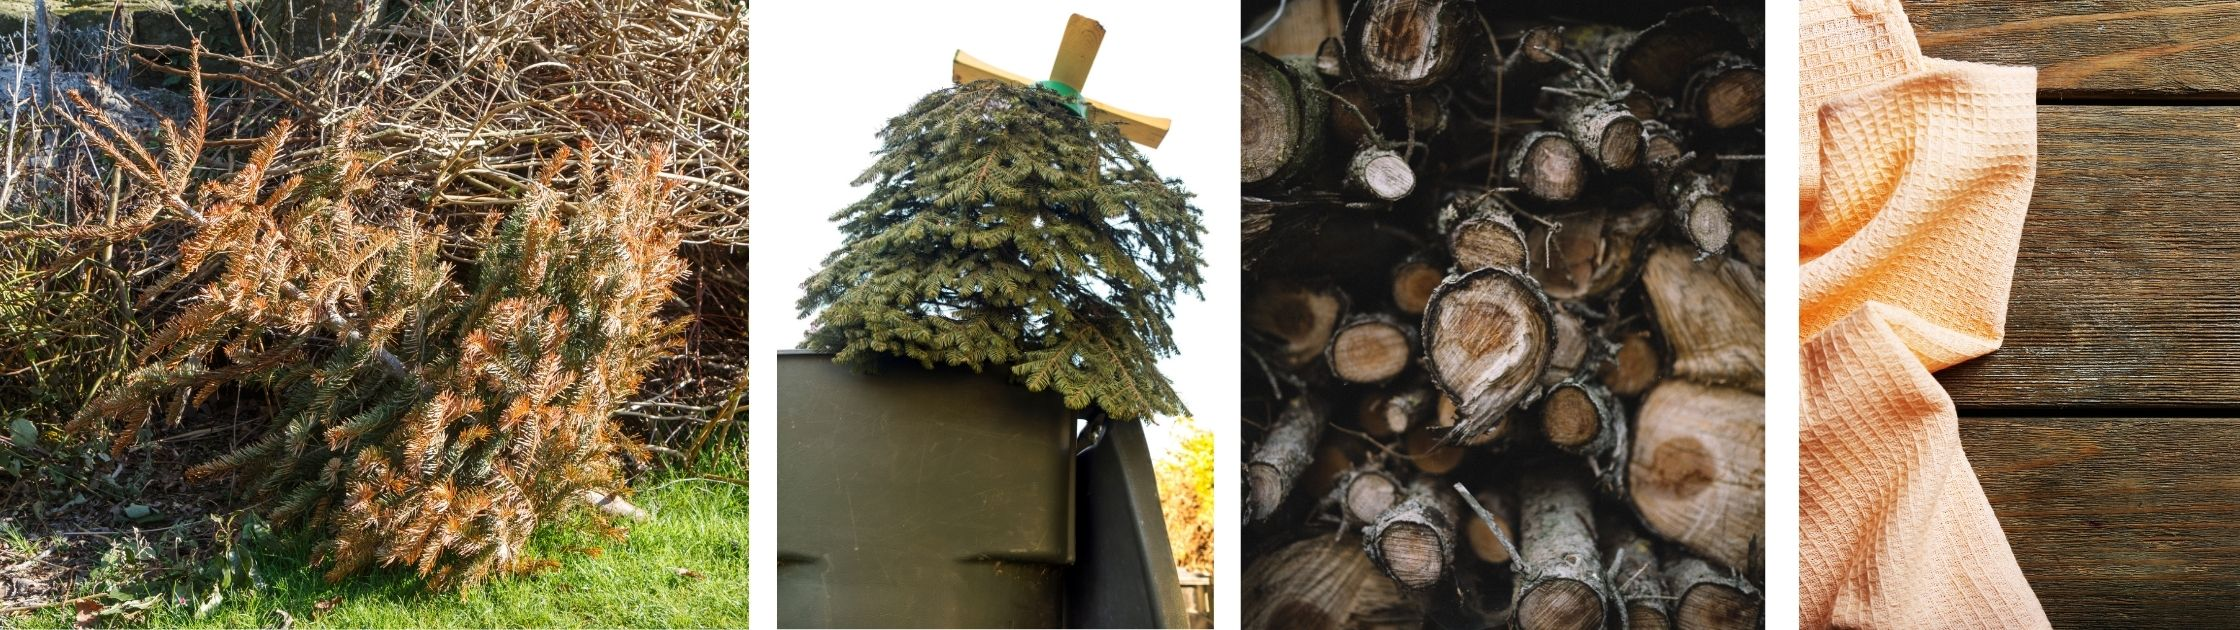 Recycle your tree, christmas is over, hold on tight, new years, windermere, what are we supposed to do now, all in for you